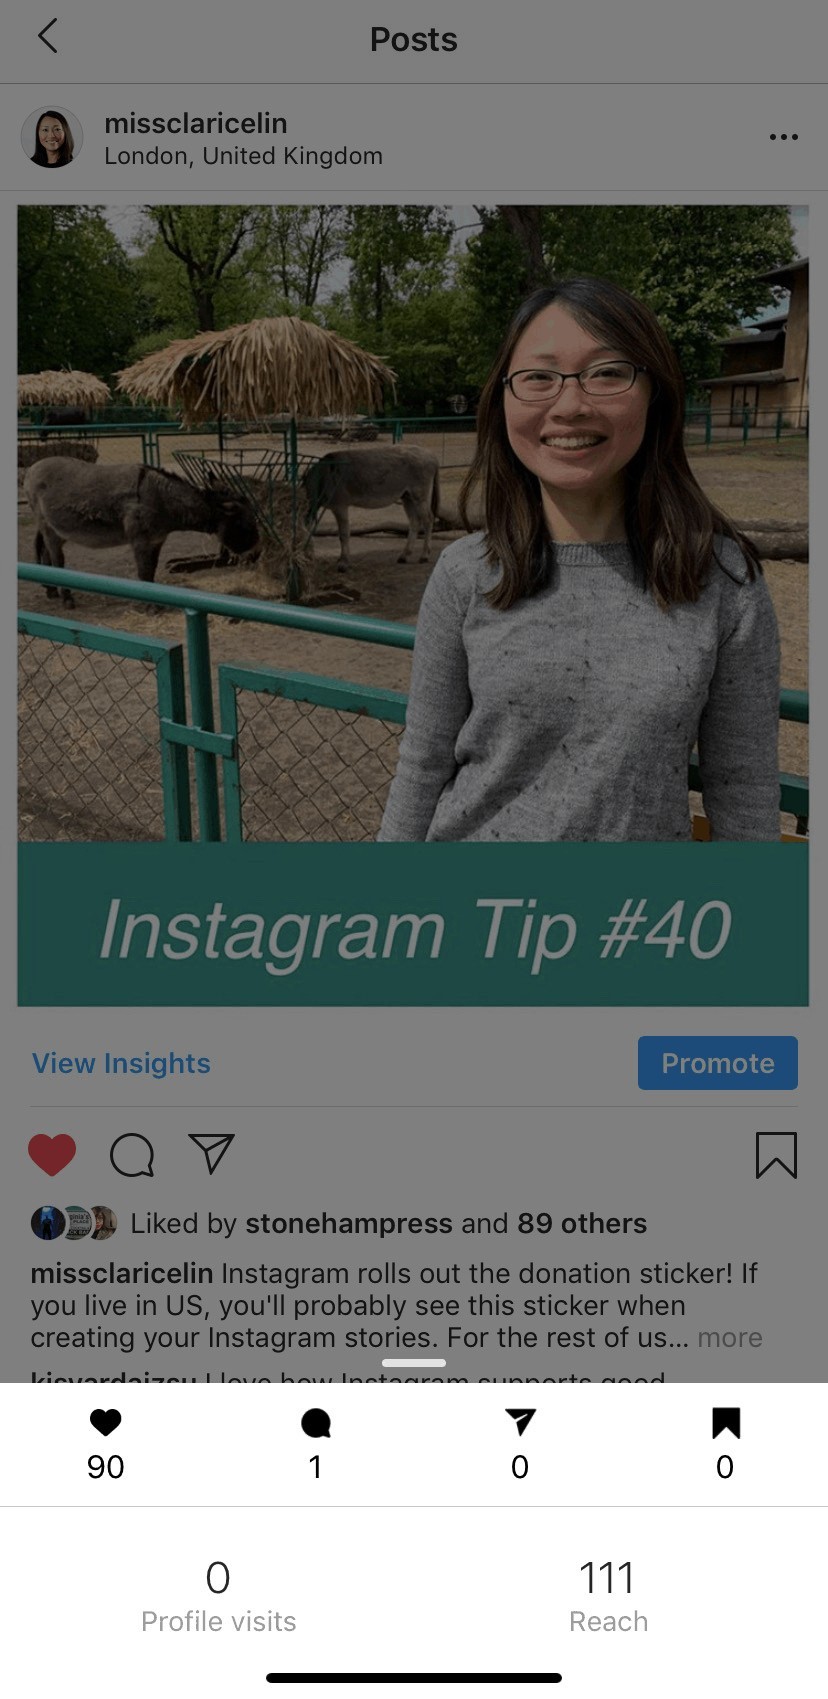 Instagram Post Partial Insights